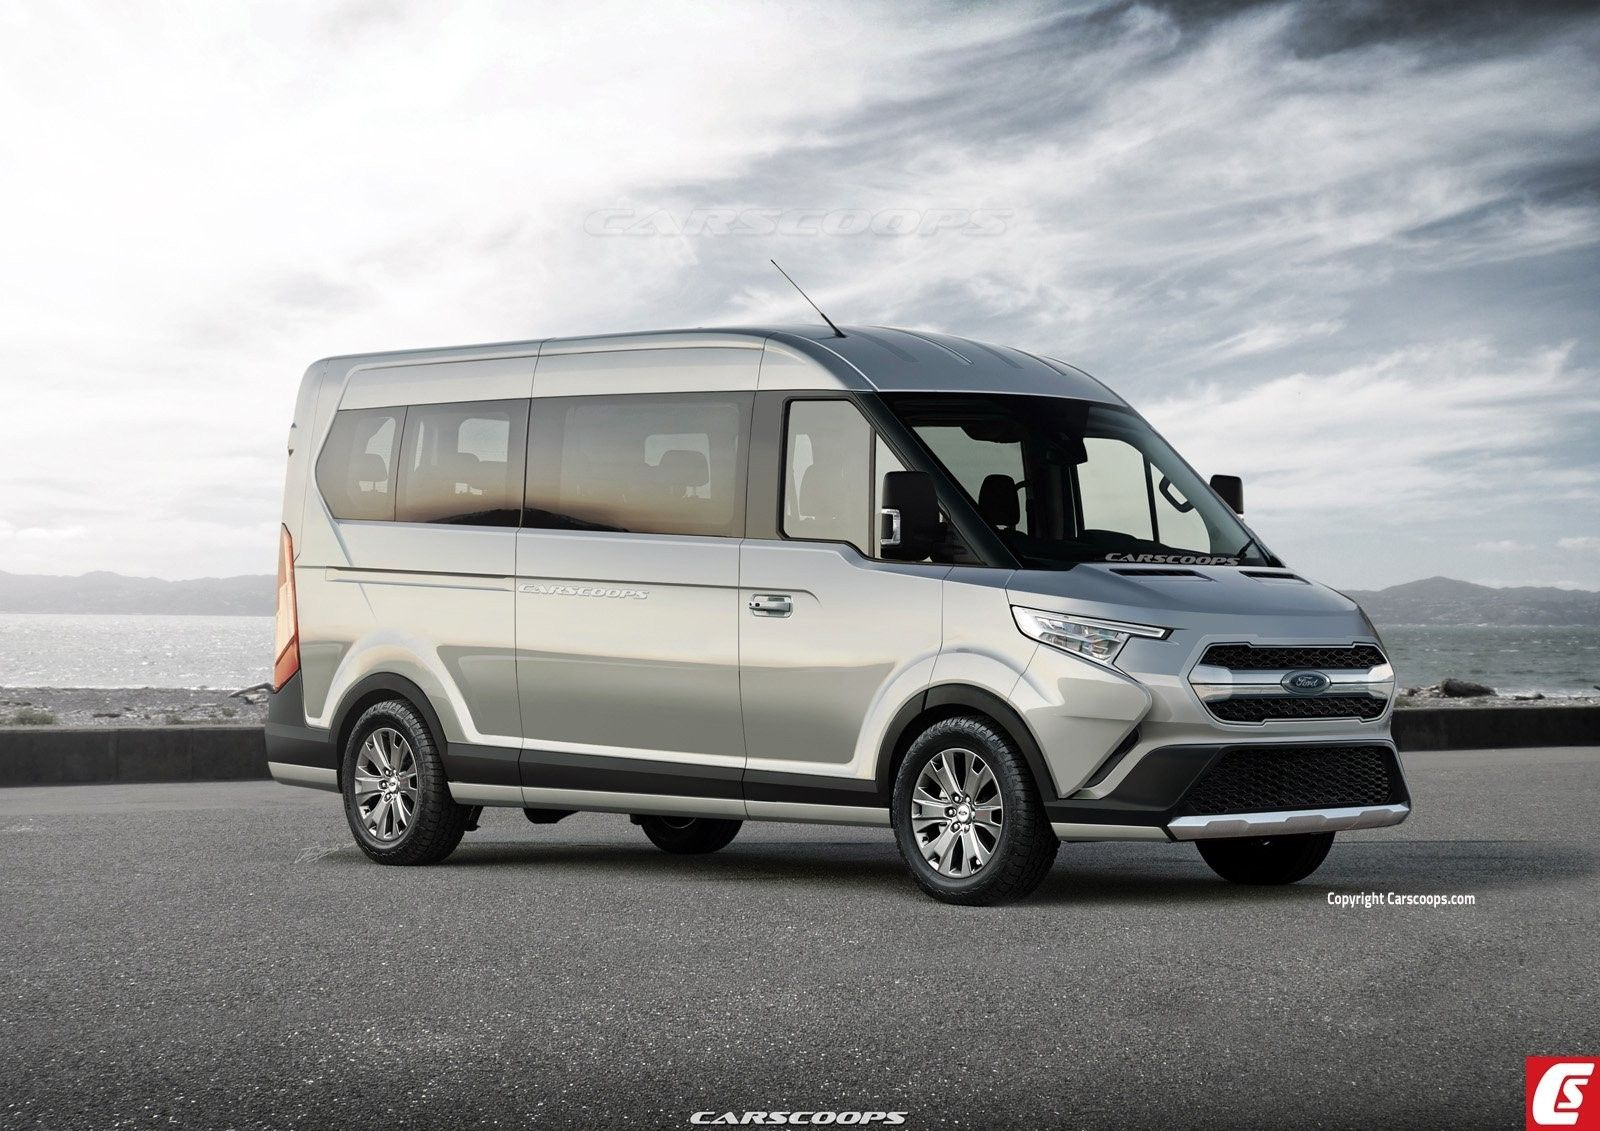 2019 Chevrolet Expressgo Van Release Specs And Review Ford